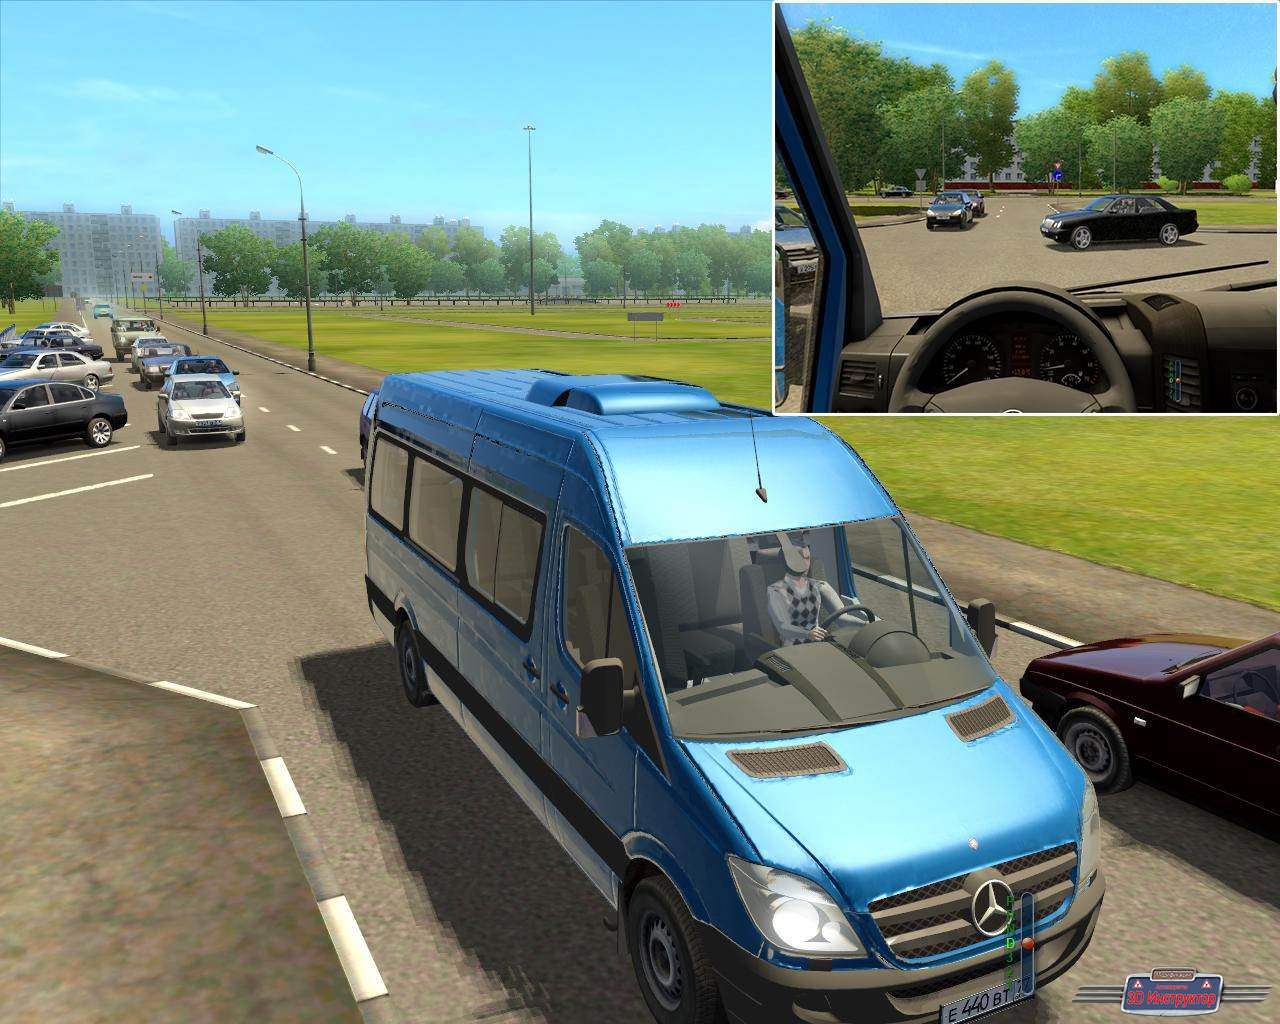 Mercedes Benz Sprinter для 3D Инструктор [2.2.7]